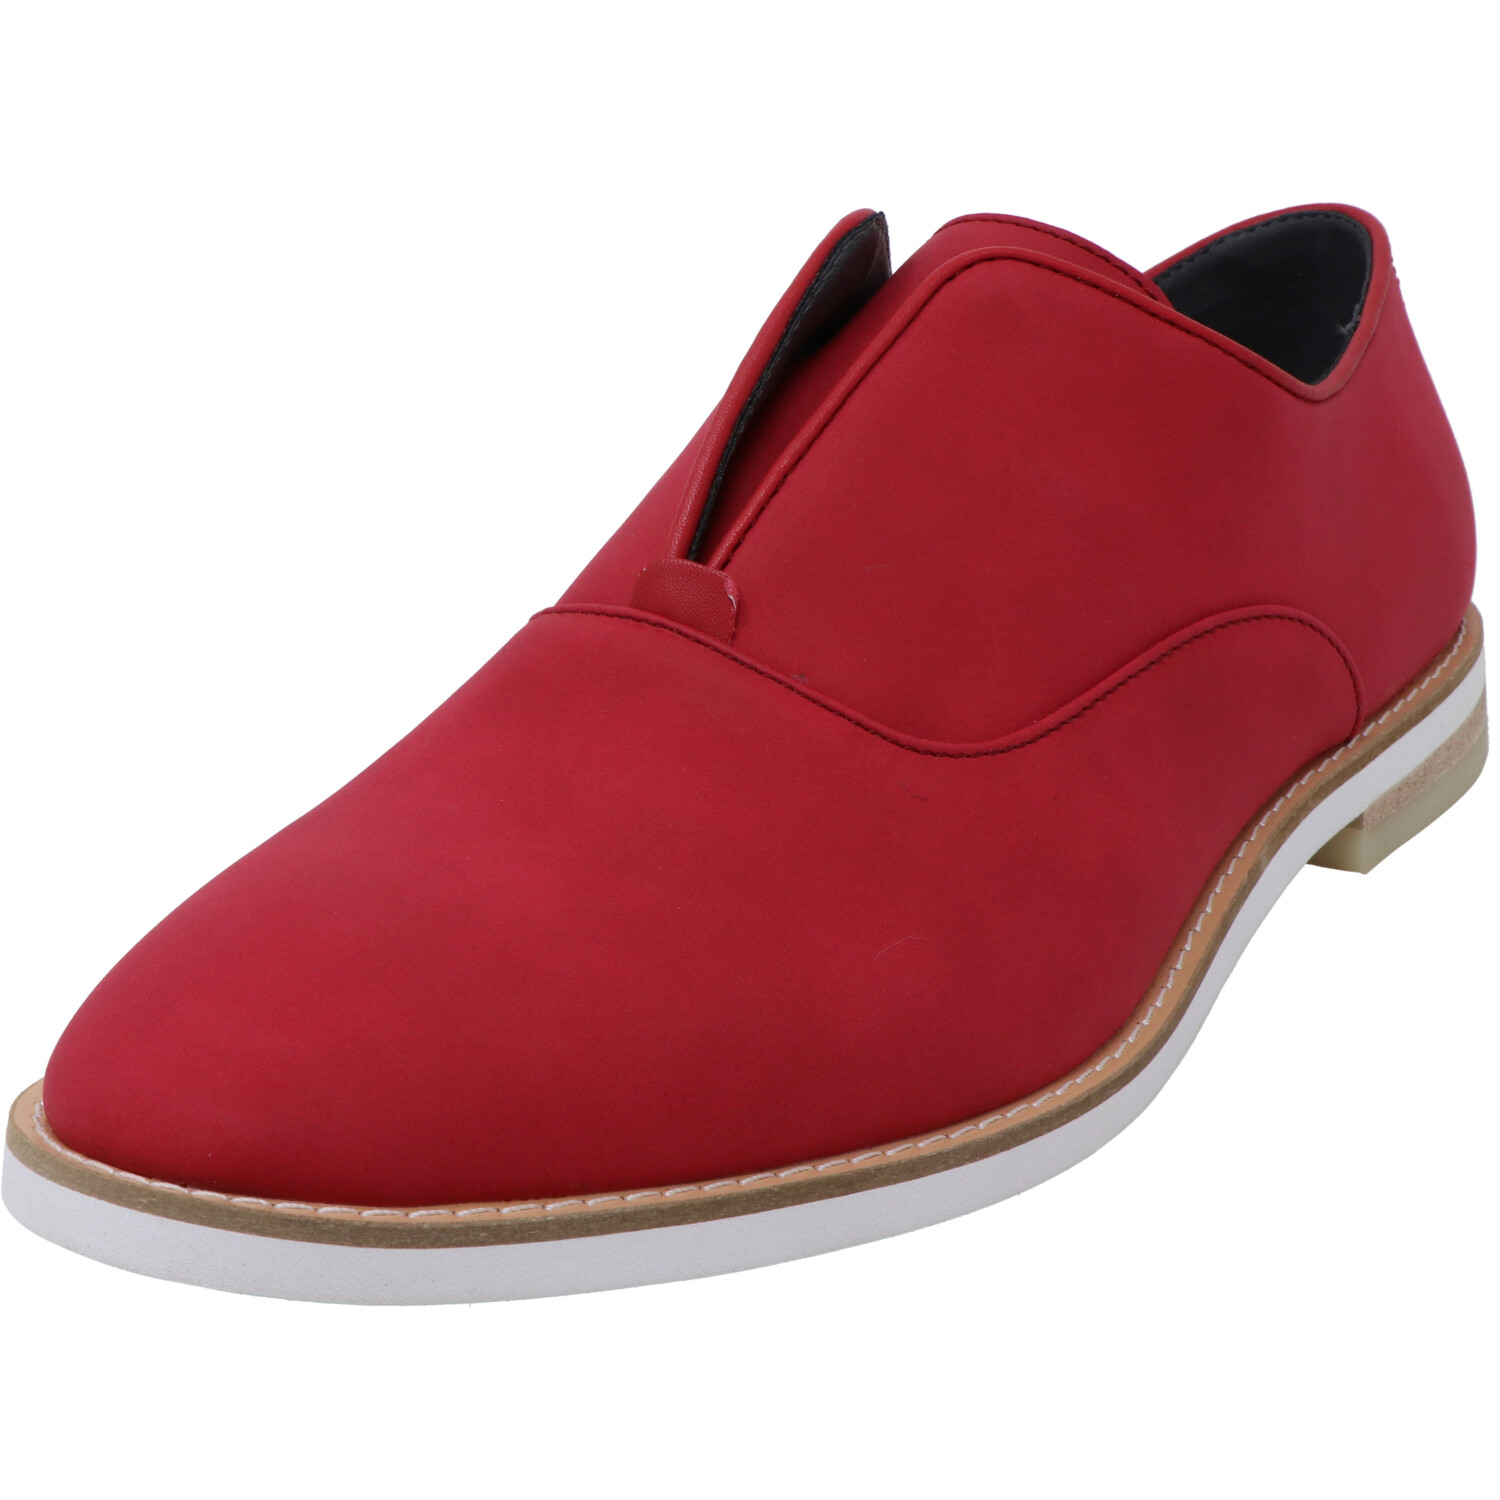 Calvin Klein Men's Auston Nubck Smooth Brick Red Ankle-High Slip-On Shoes - 13M